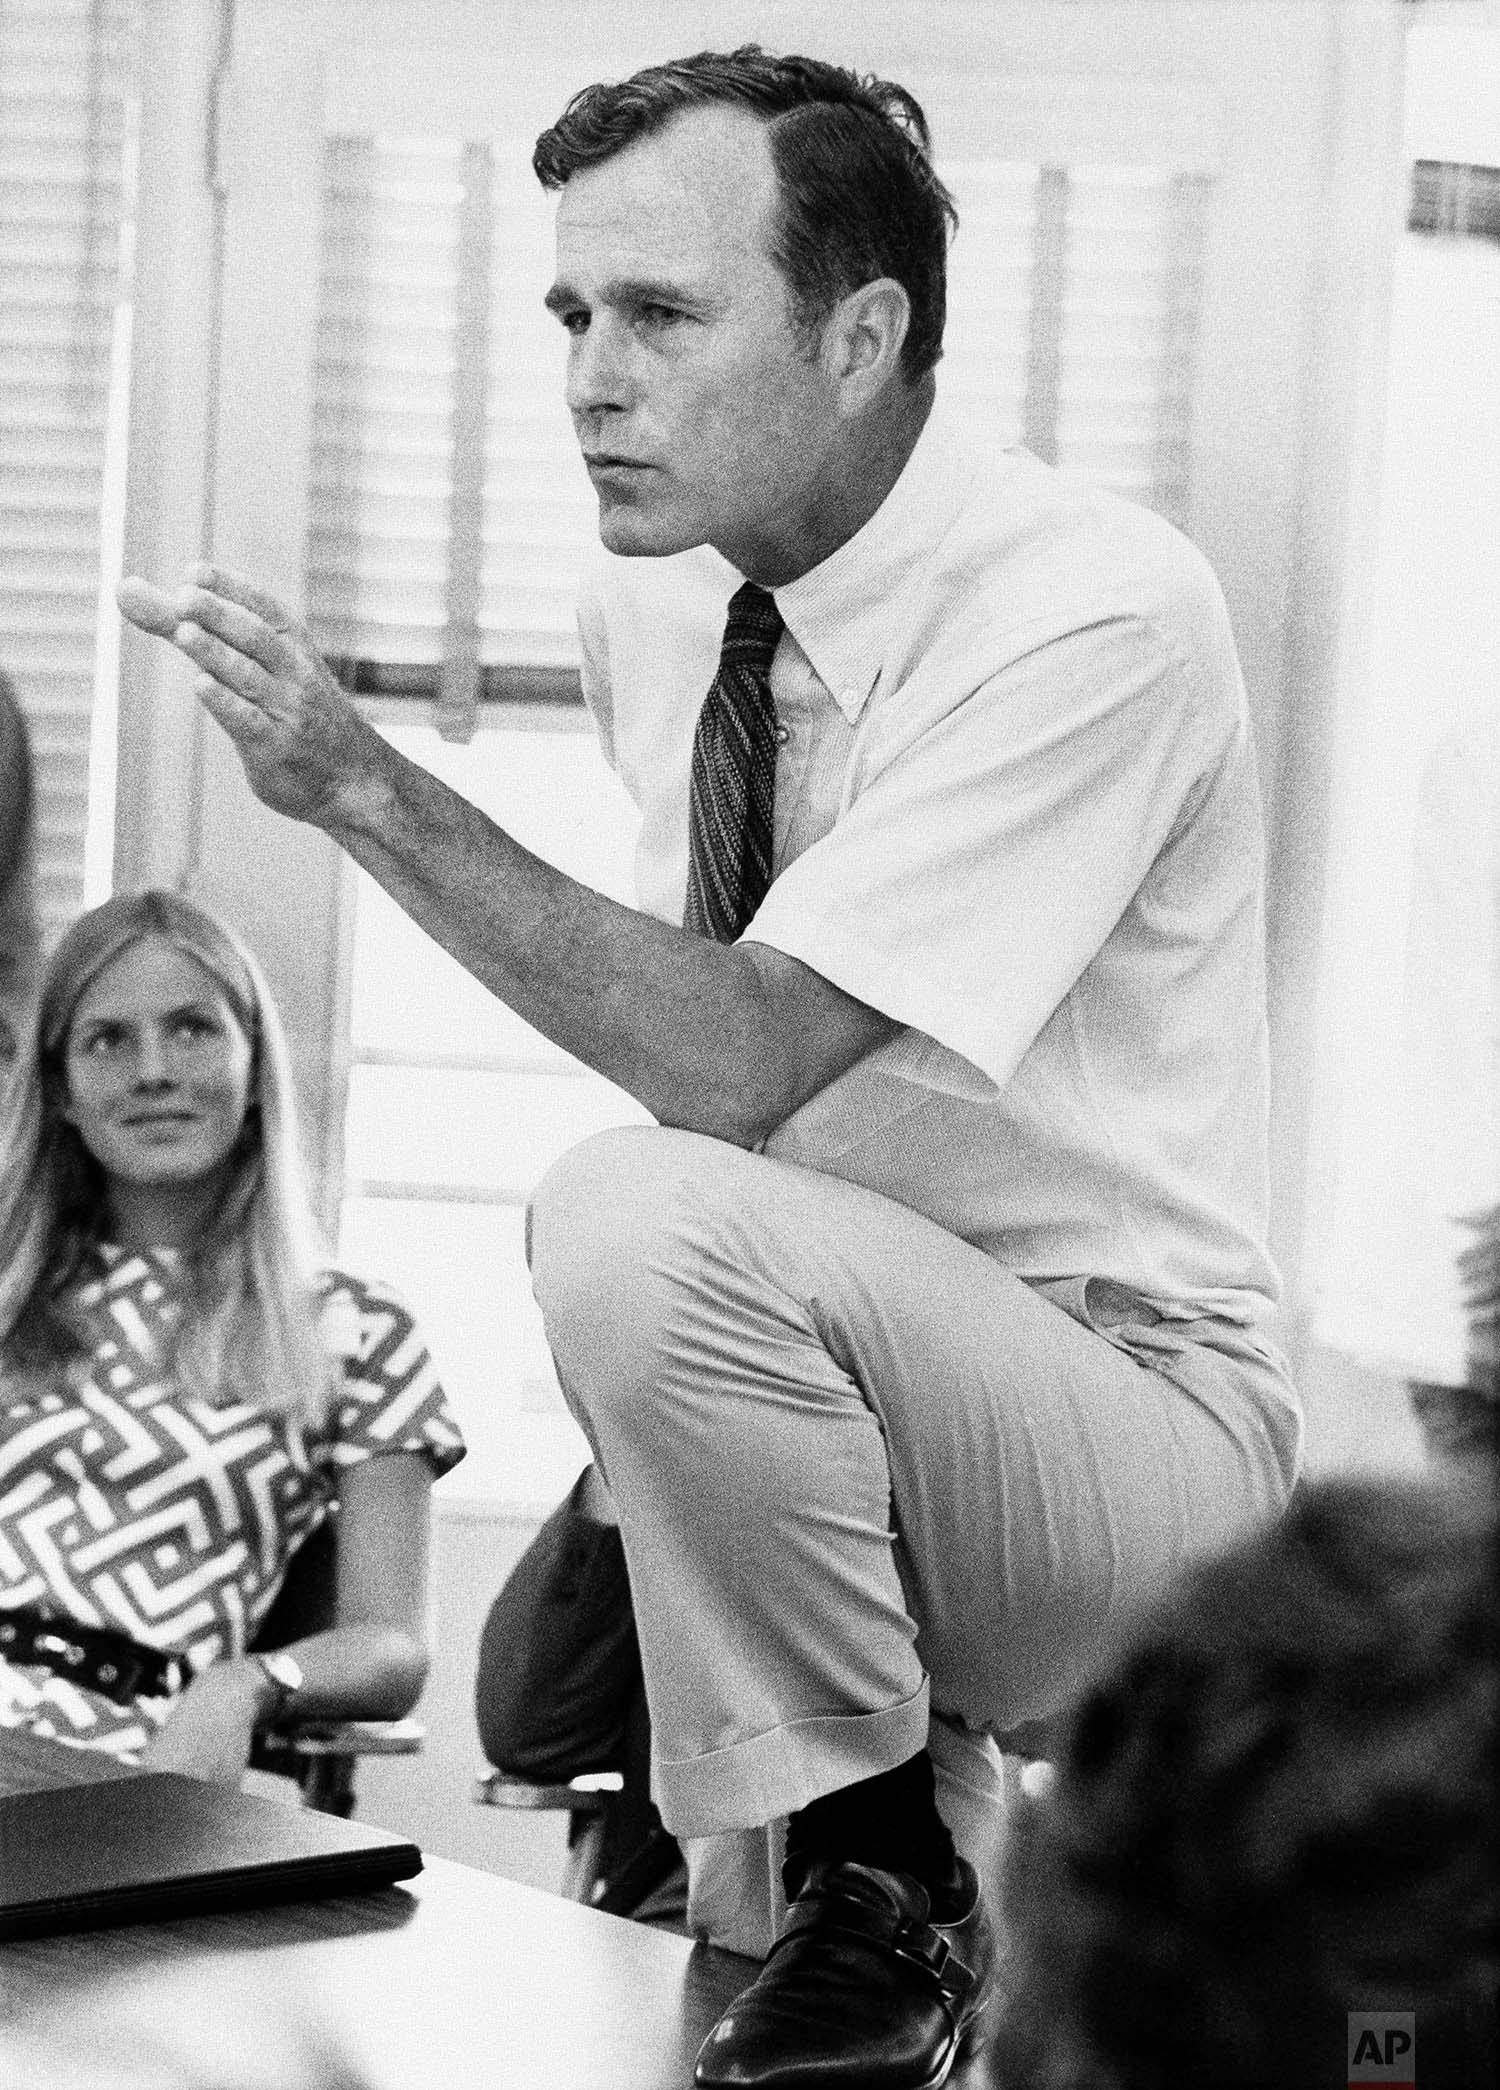 Rep. George H.W. Bush, R-Texas., who is seeking a seat in U.S. Senate, talks with a group of young people at a rally in Houston on Oct. 9, 1970. (AP Photo)